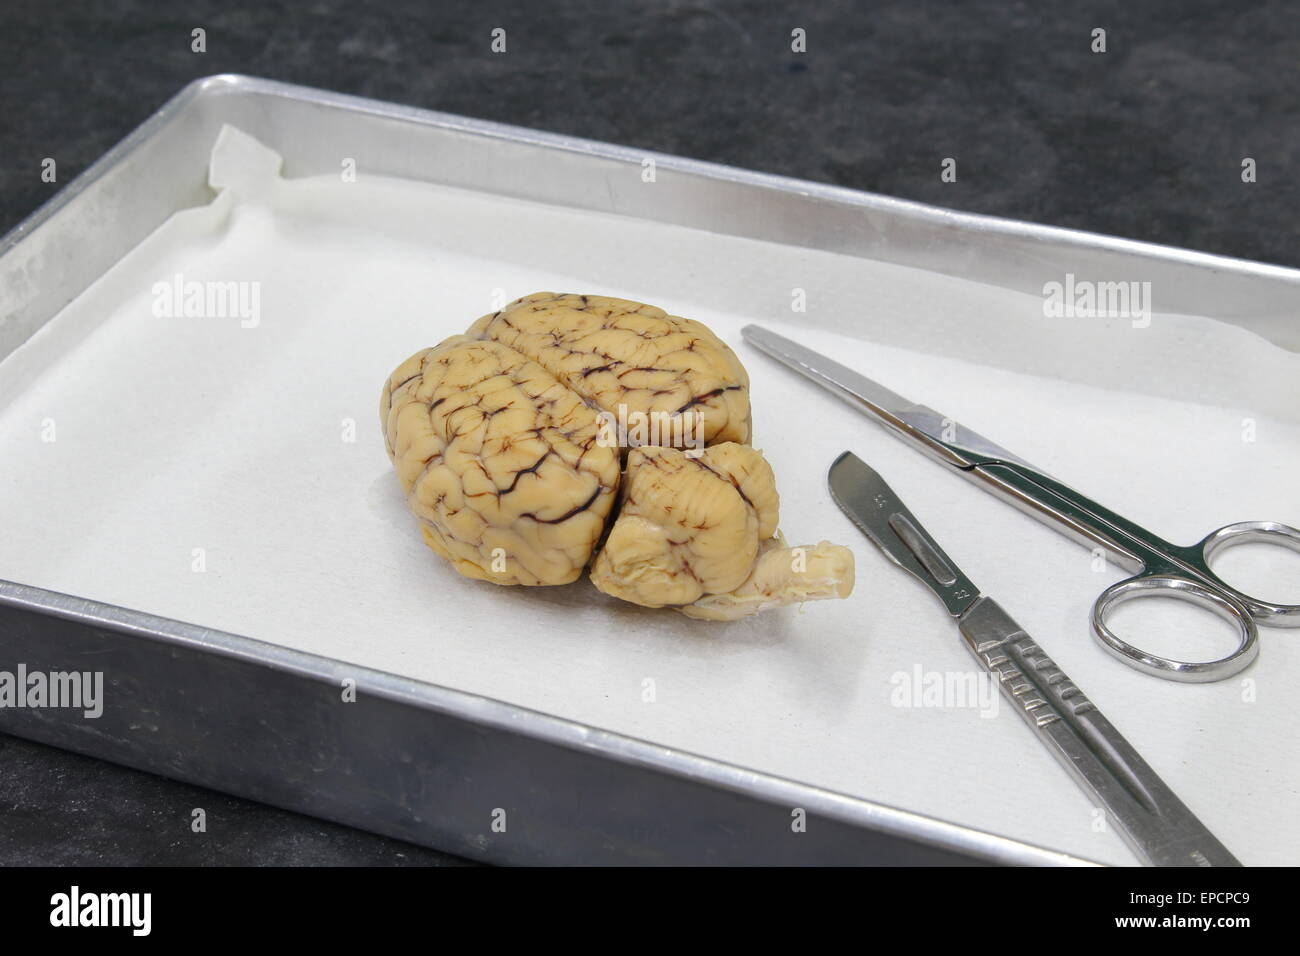 Brain Dissection Stock Photos & Brain Dissection Stock Images - Alamy